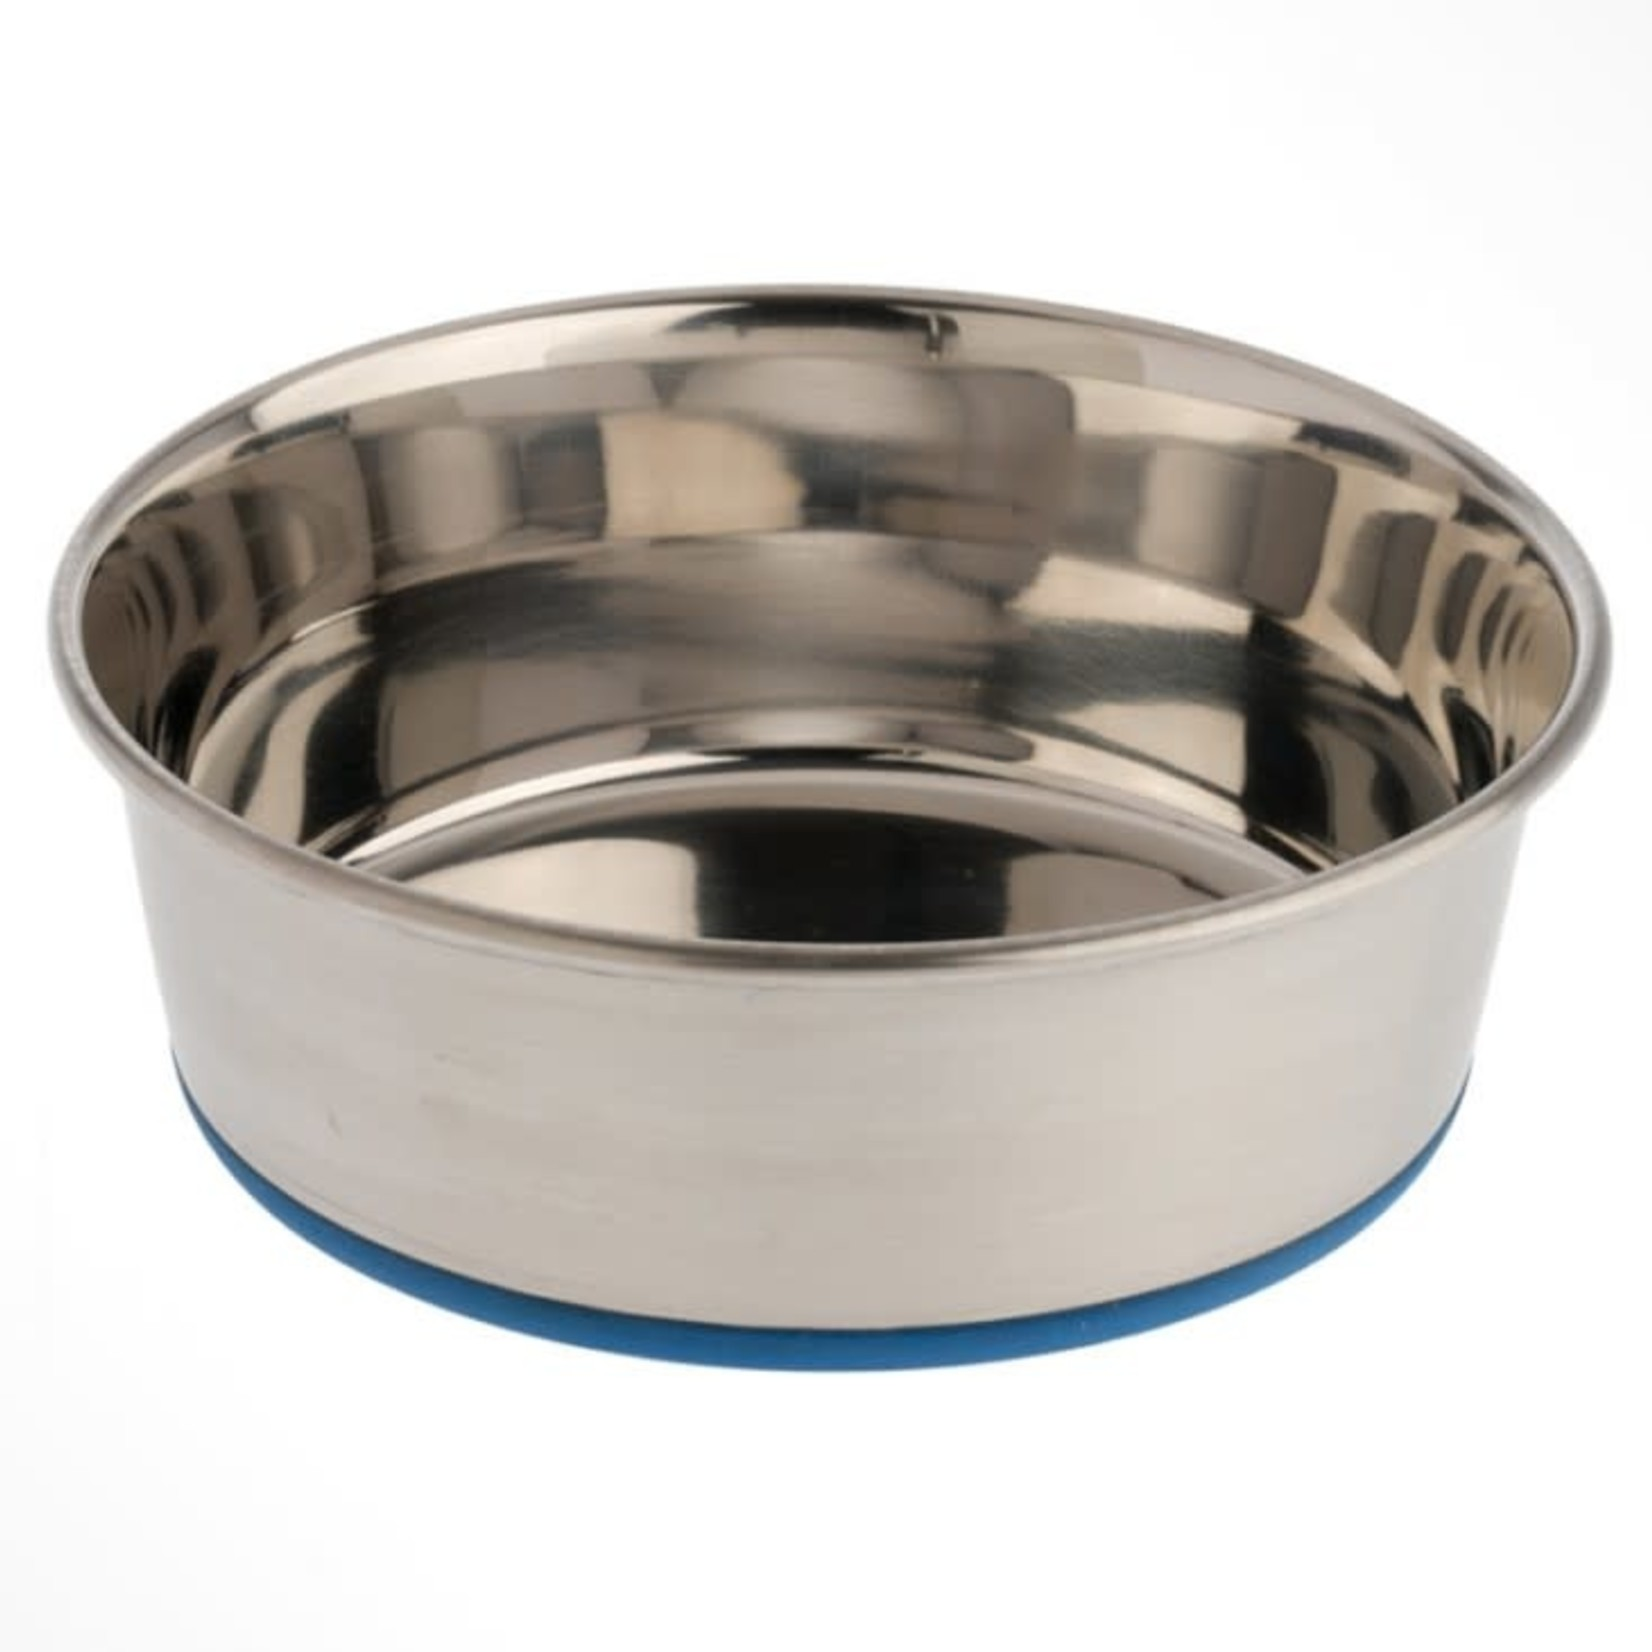 Our Pets Company Durapet Stainless Steel Bowl 1.25 Quart